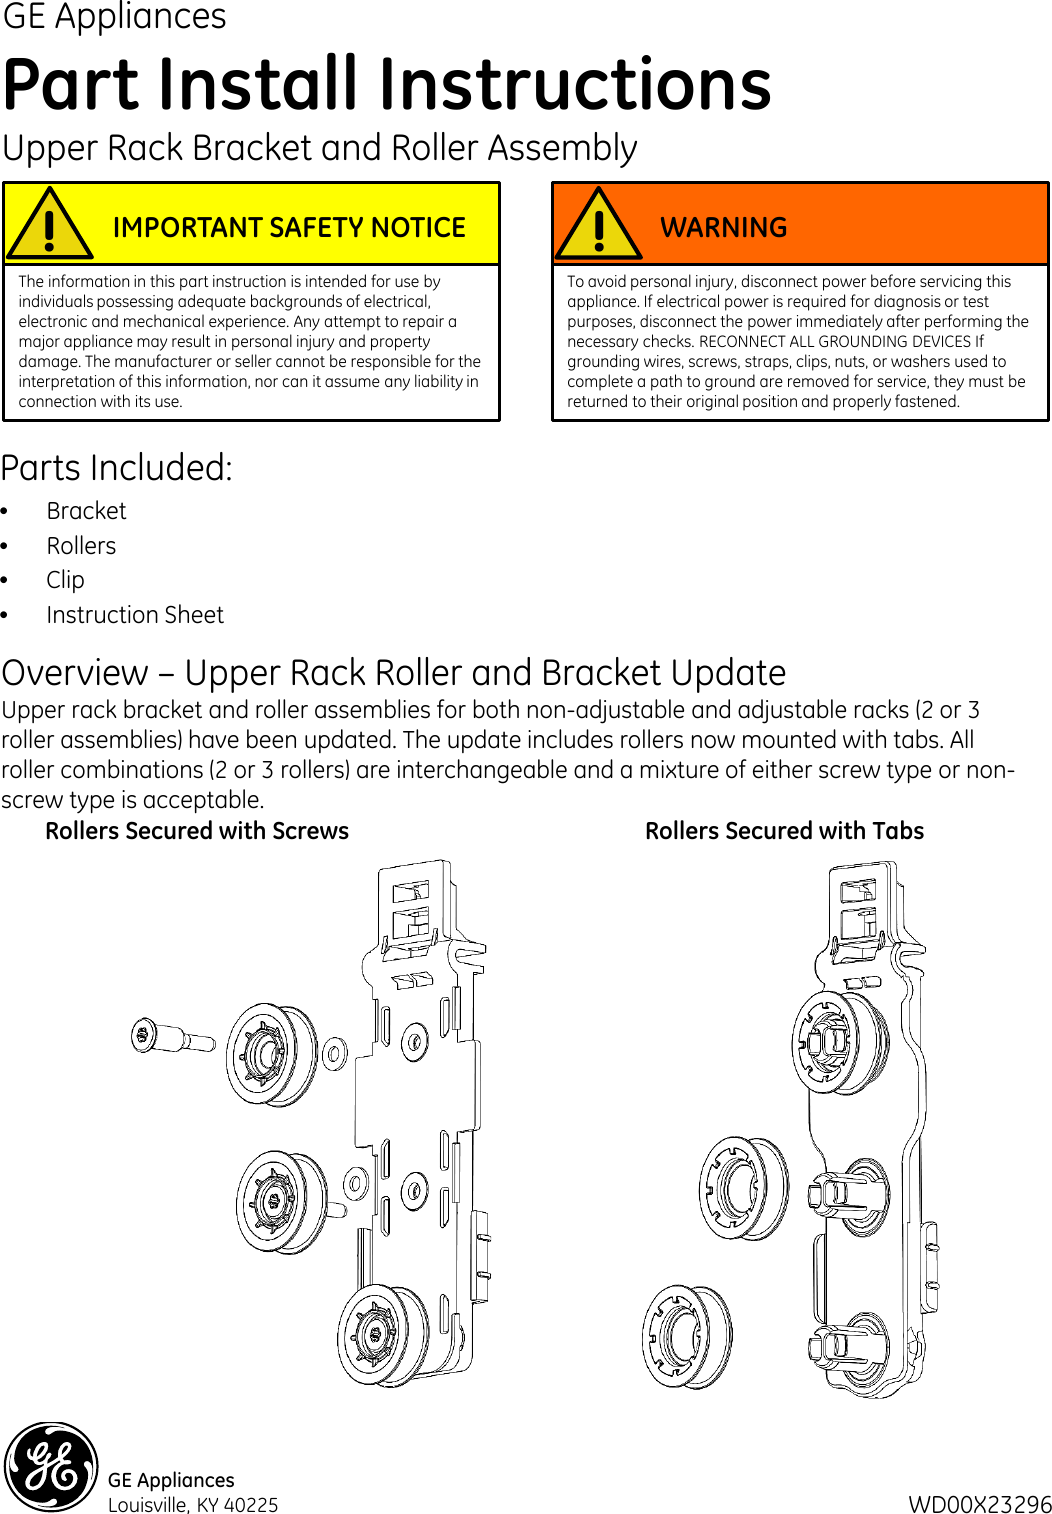 Ge dishwasher troubleshooting gallery free troubleshooting examples ge dishwasher quiet power 3 troubleshooting gallery free ge dishwasher instructions choice image all instruction examples fandeluxe Choice Image